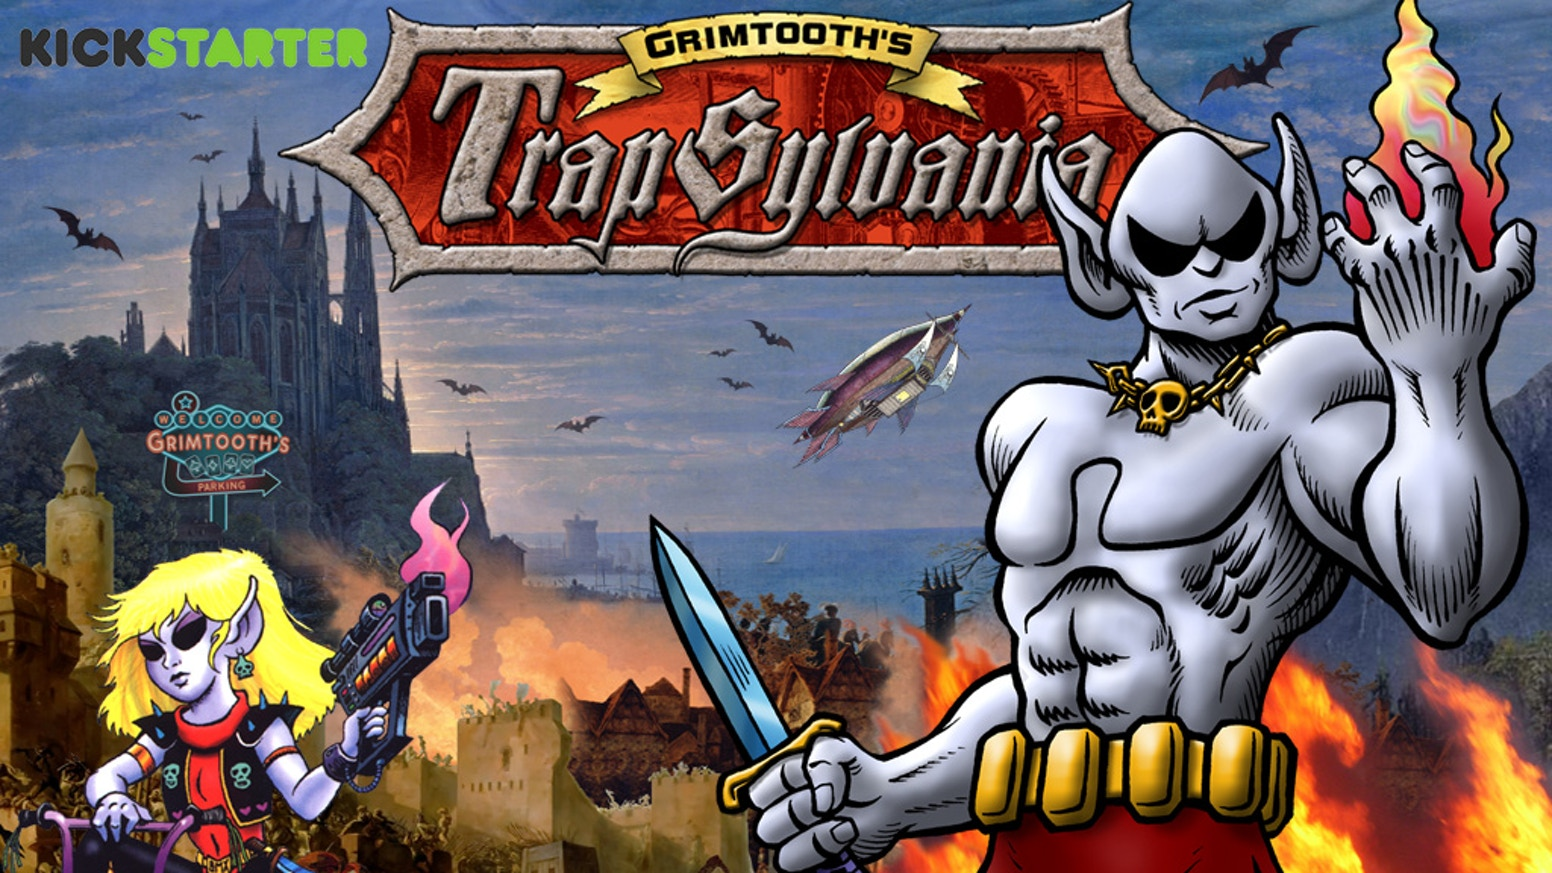 Grimtooth's Trapsylvania (DCC Sourcebook) is the top crowdfunding project launched today. Grimtooth's Trapsylvania (DCC Sourcebook) raised over $50285 from 807 backers. Other top projects include Low Poly Dinos Dinosaur 3D models by 3D Printing Professor, A Mischief of Giant Rats!, Spanish Fort for 28mm wargaming...